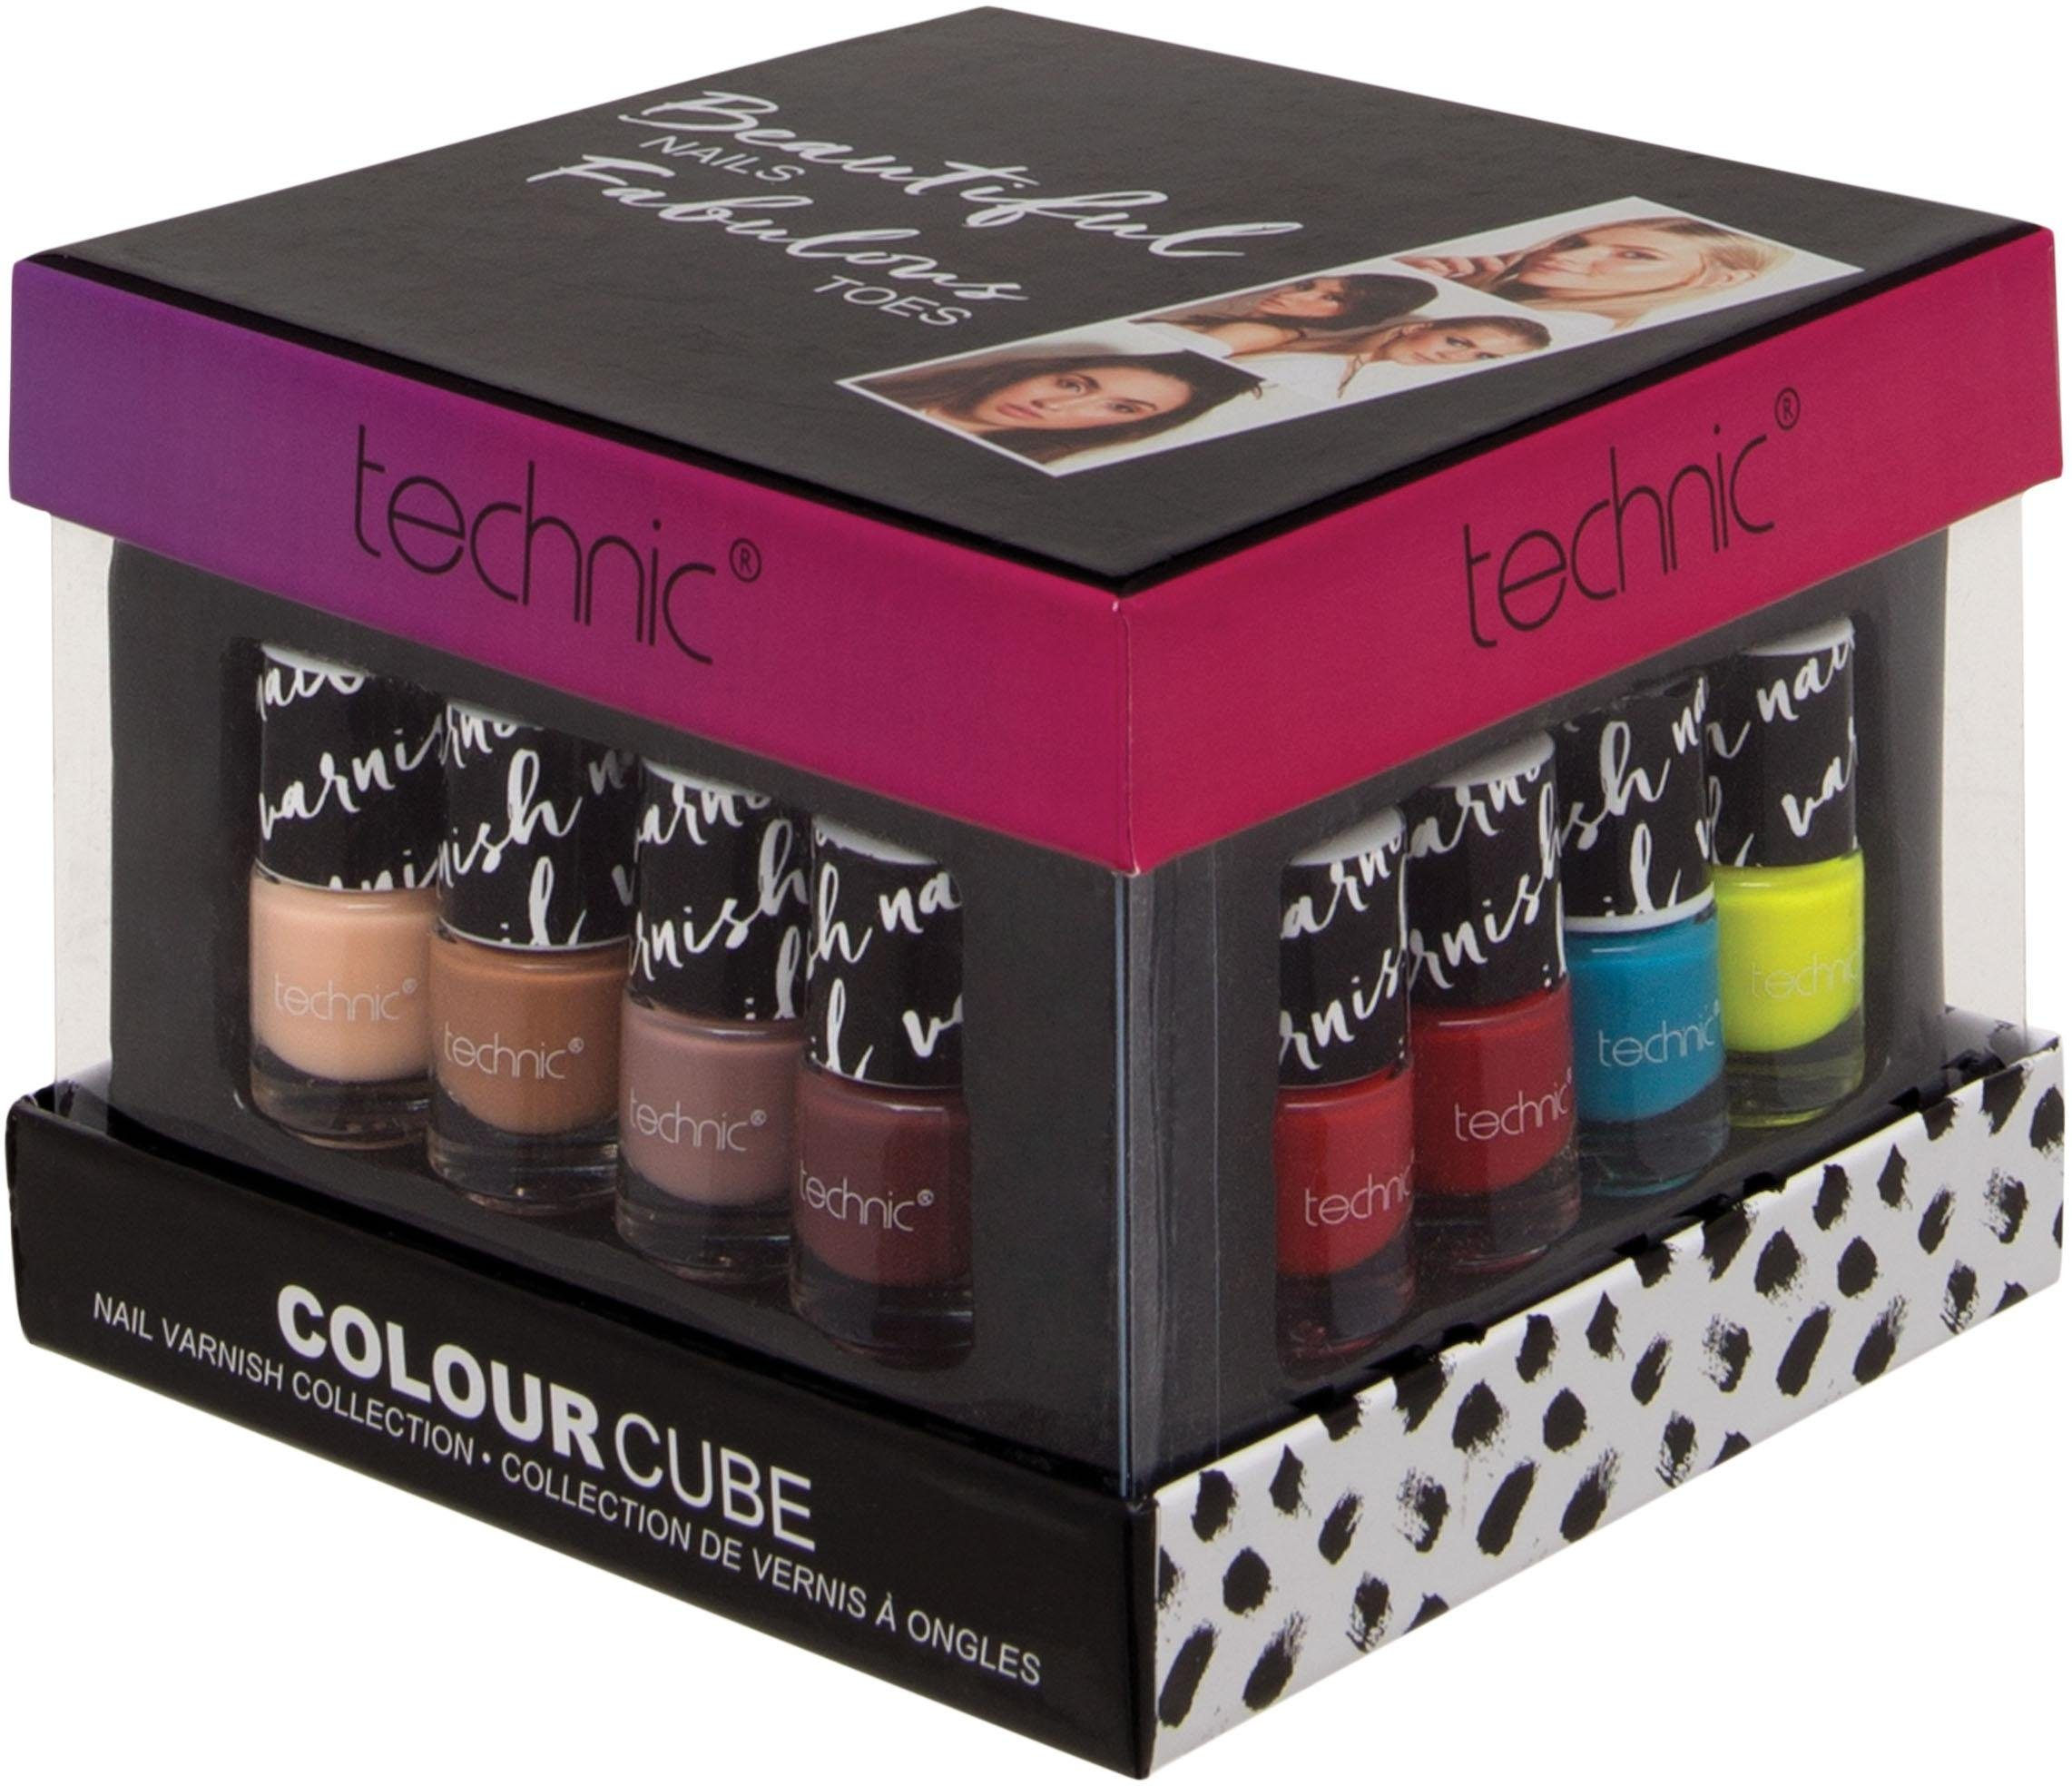 technic, »Colour Cube«, Nagellack-Set (16-tlg. Set)